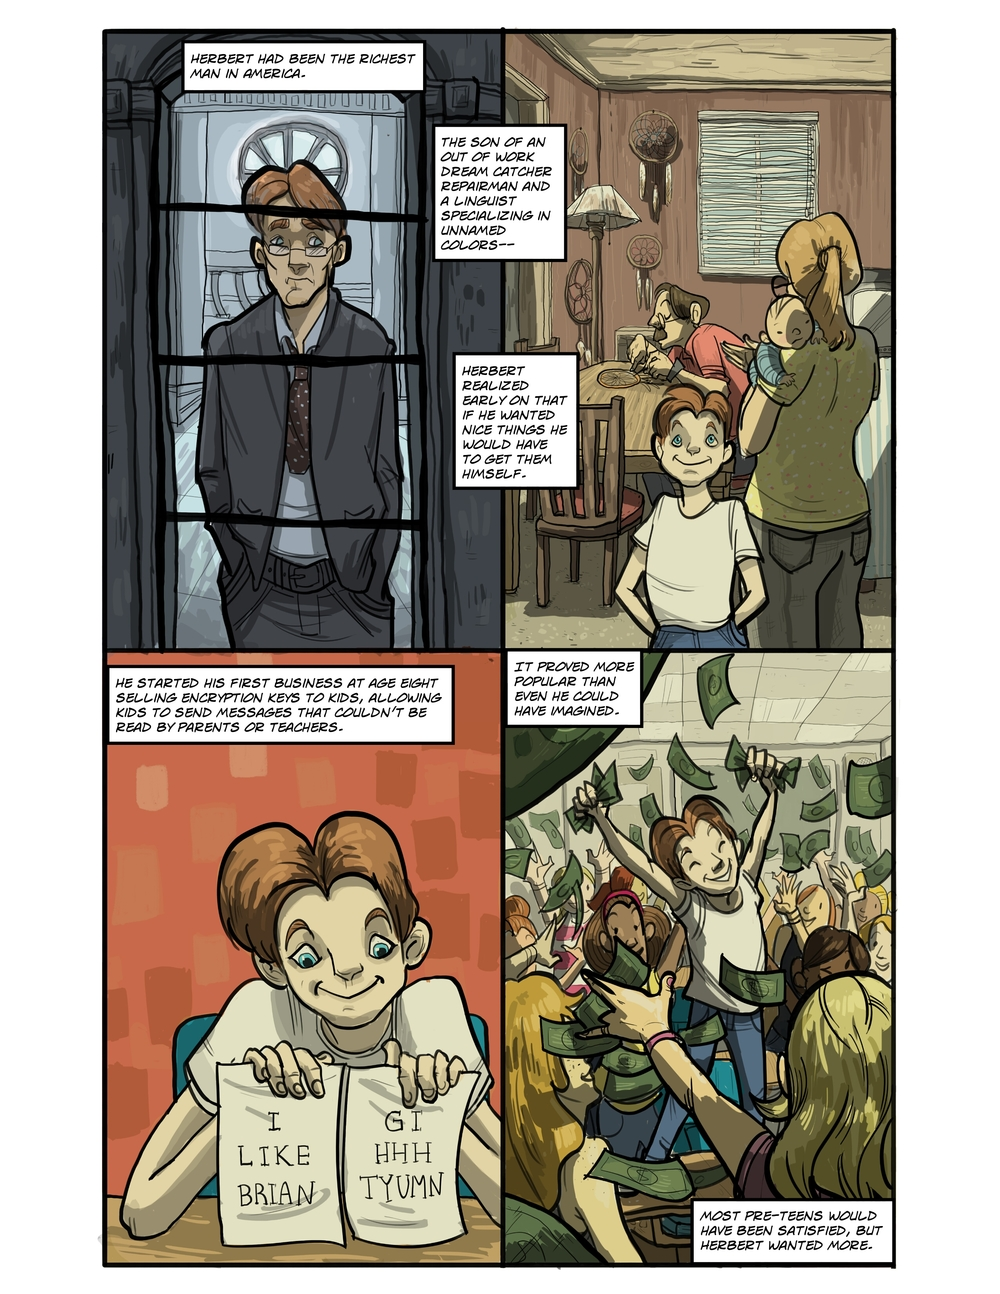 IMAGINARY STRING page 4 - story 20 in The Book of Lies